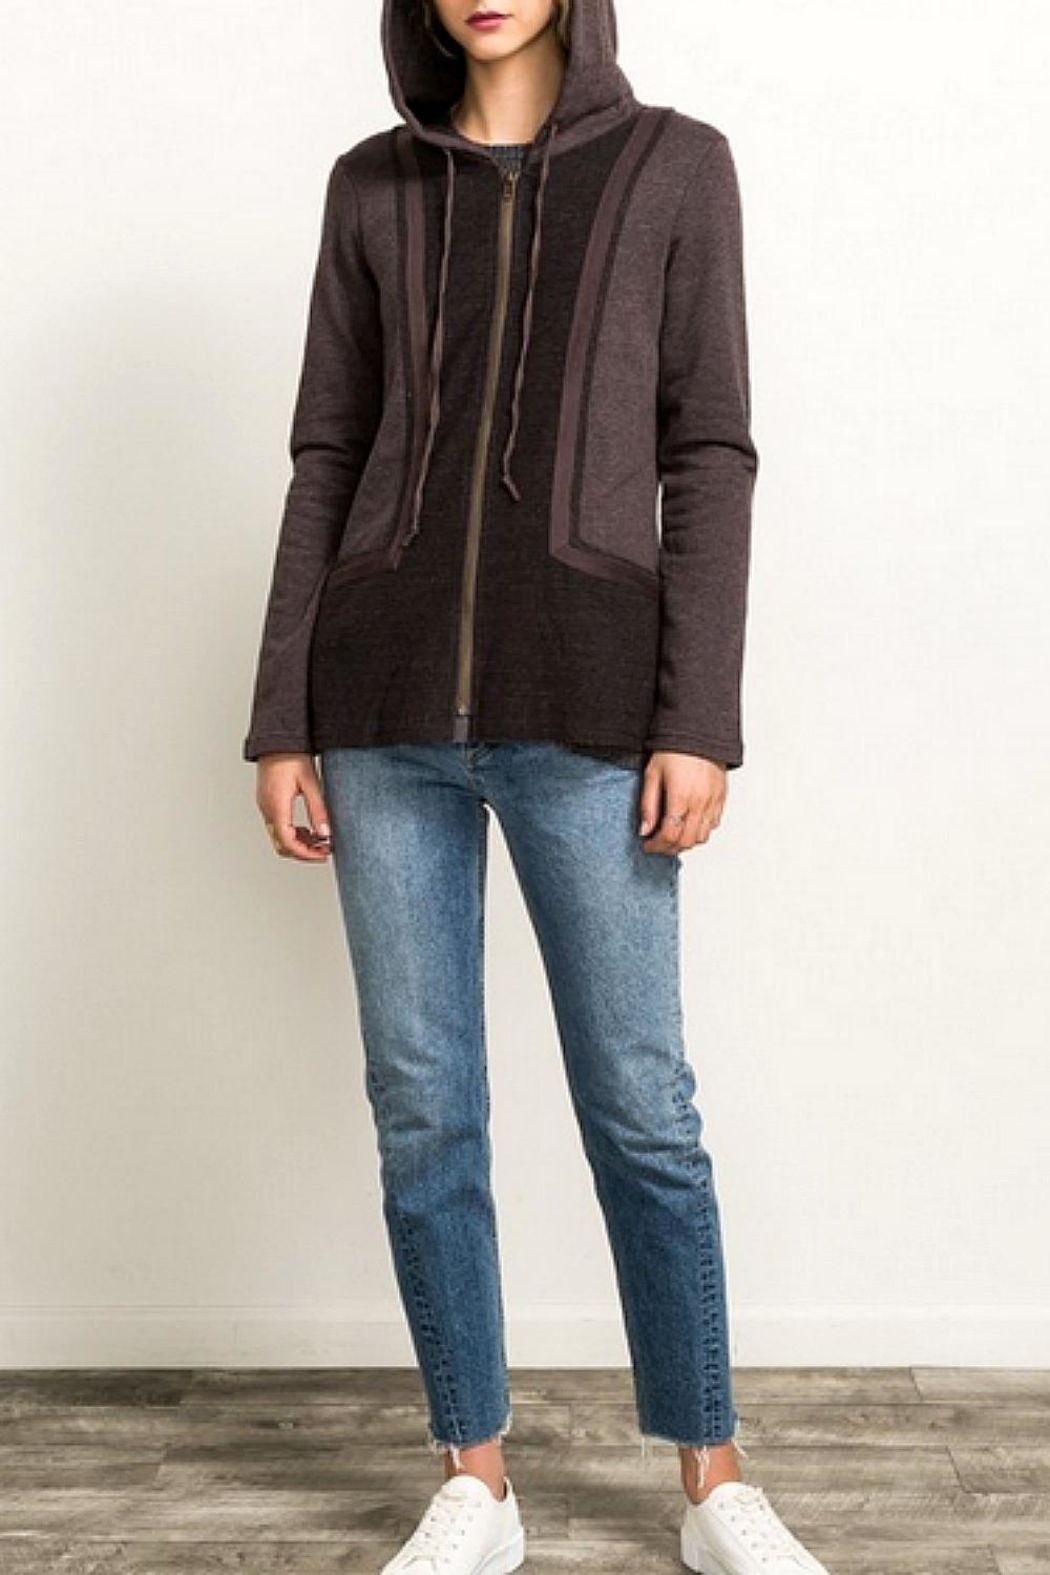 Hem & Thread Brown Contrast Sweatshirt - Front Cropped Image